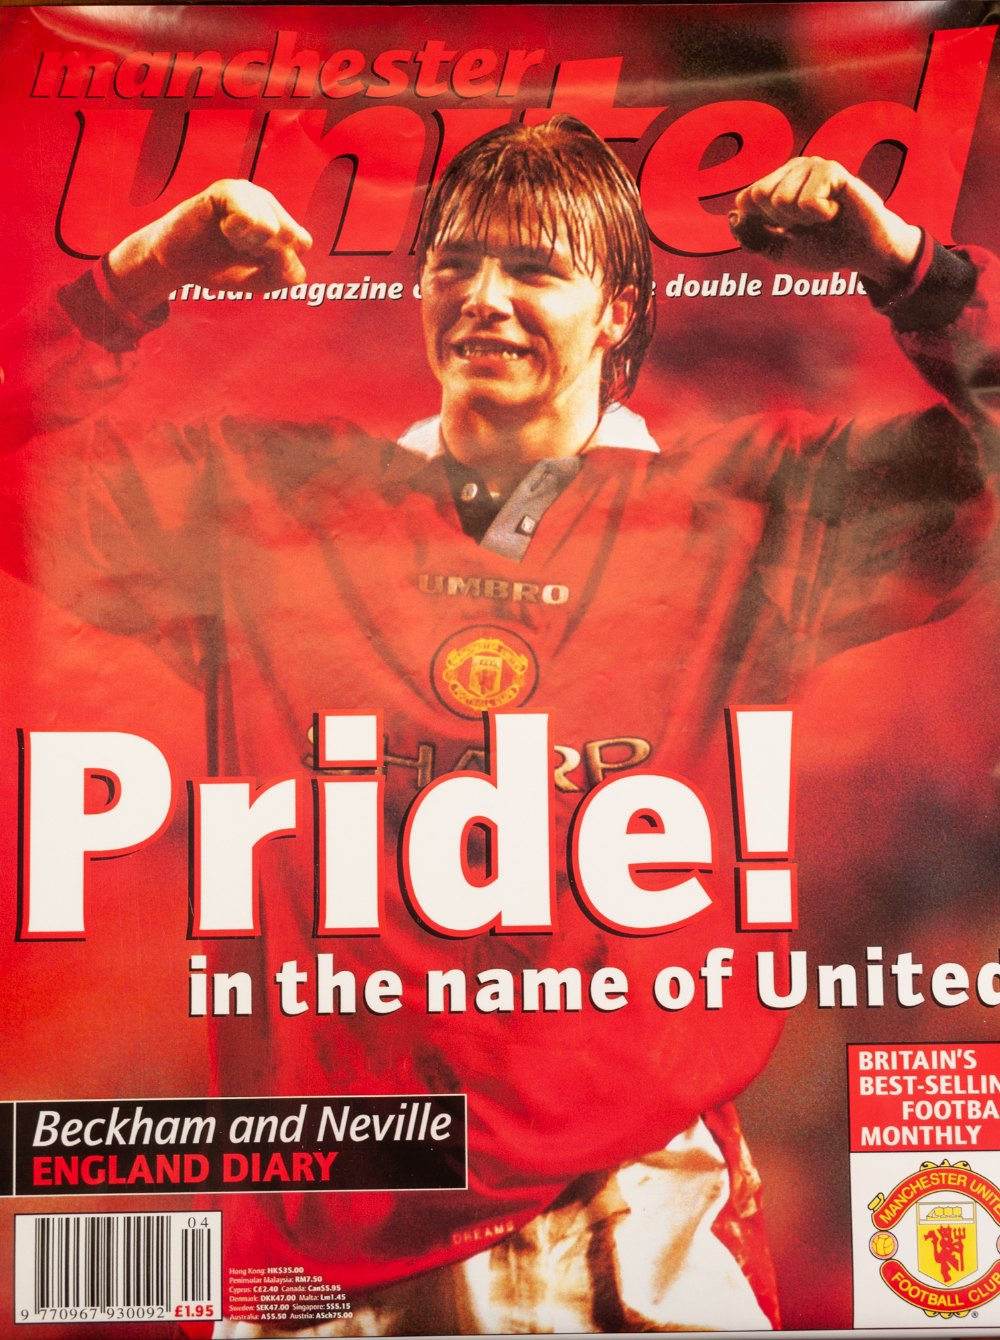 Lot 50 - IN EXCESS OF 100 POSTERS PERTAINING TO MANCHESTER UNITED